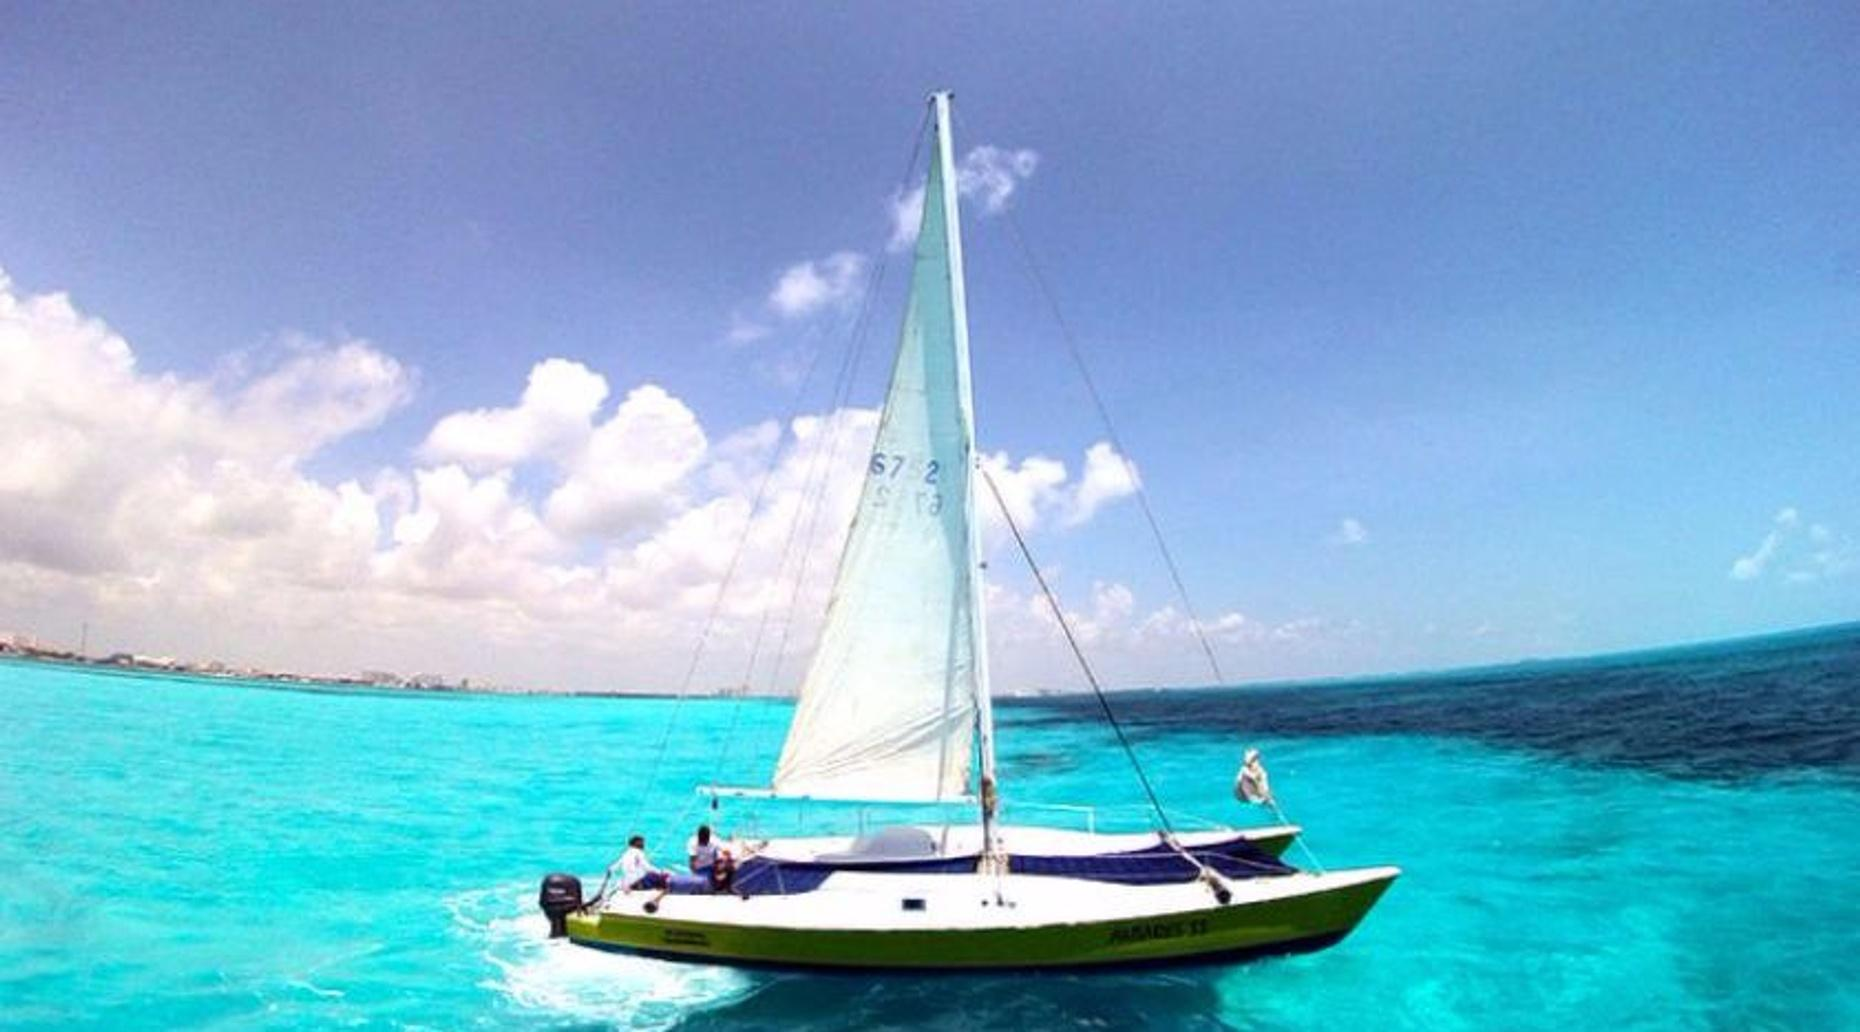 Half-Day Sailing Trip on the Antares 33 to Isla Mujeres